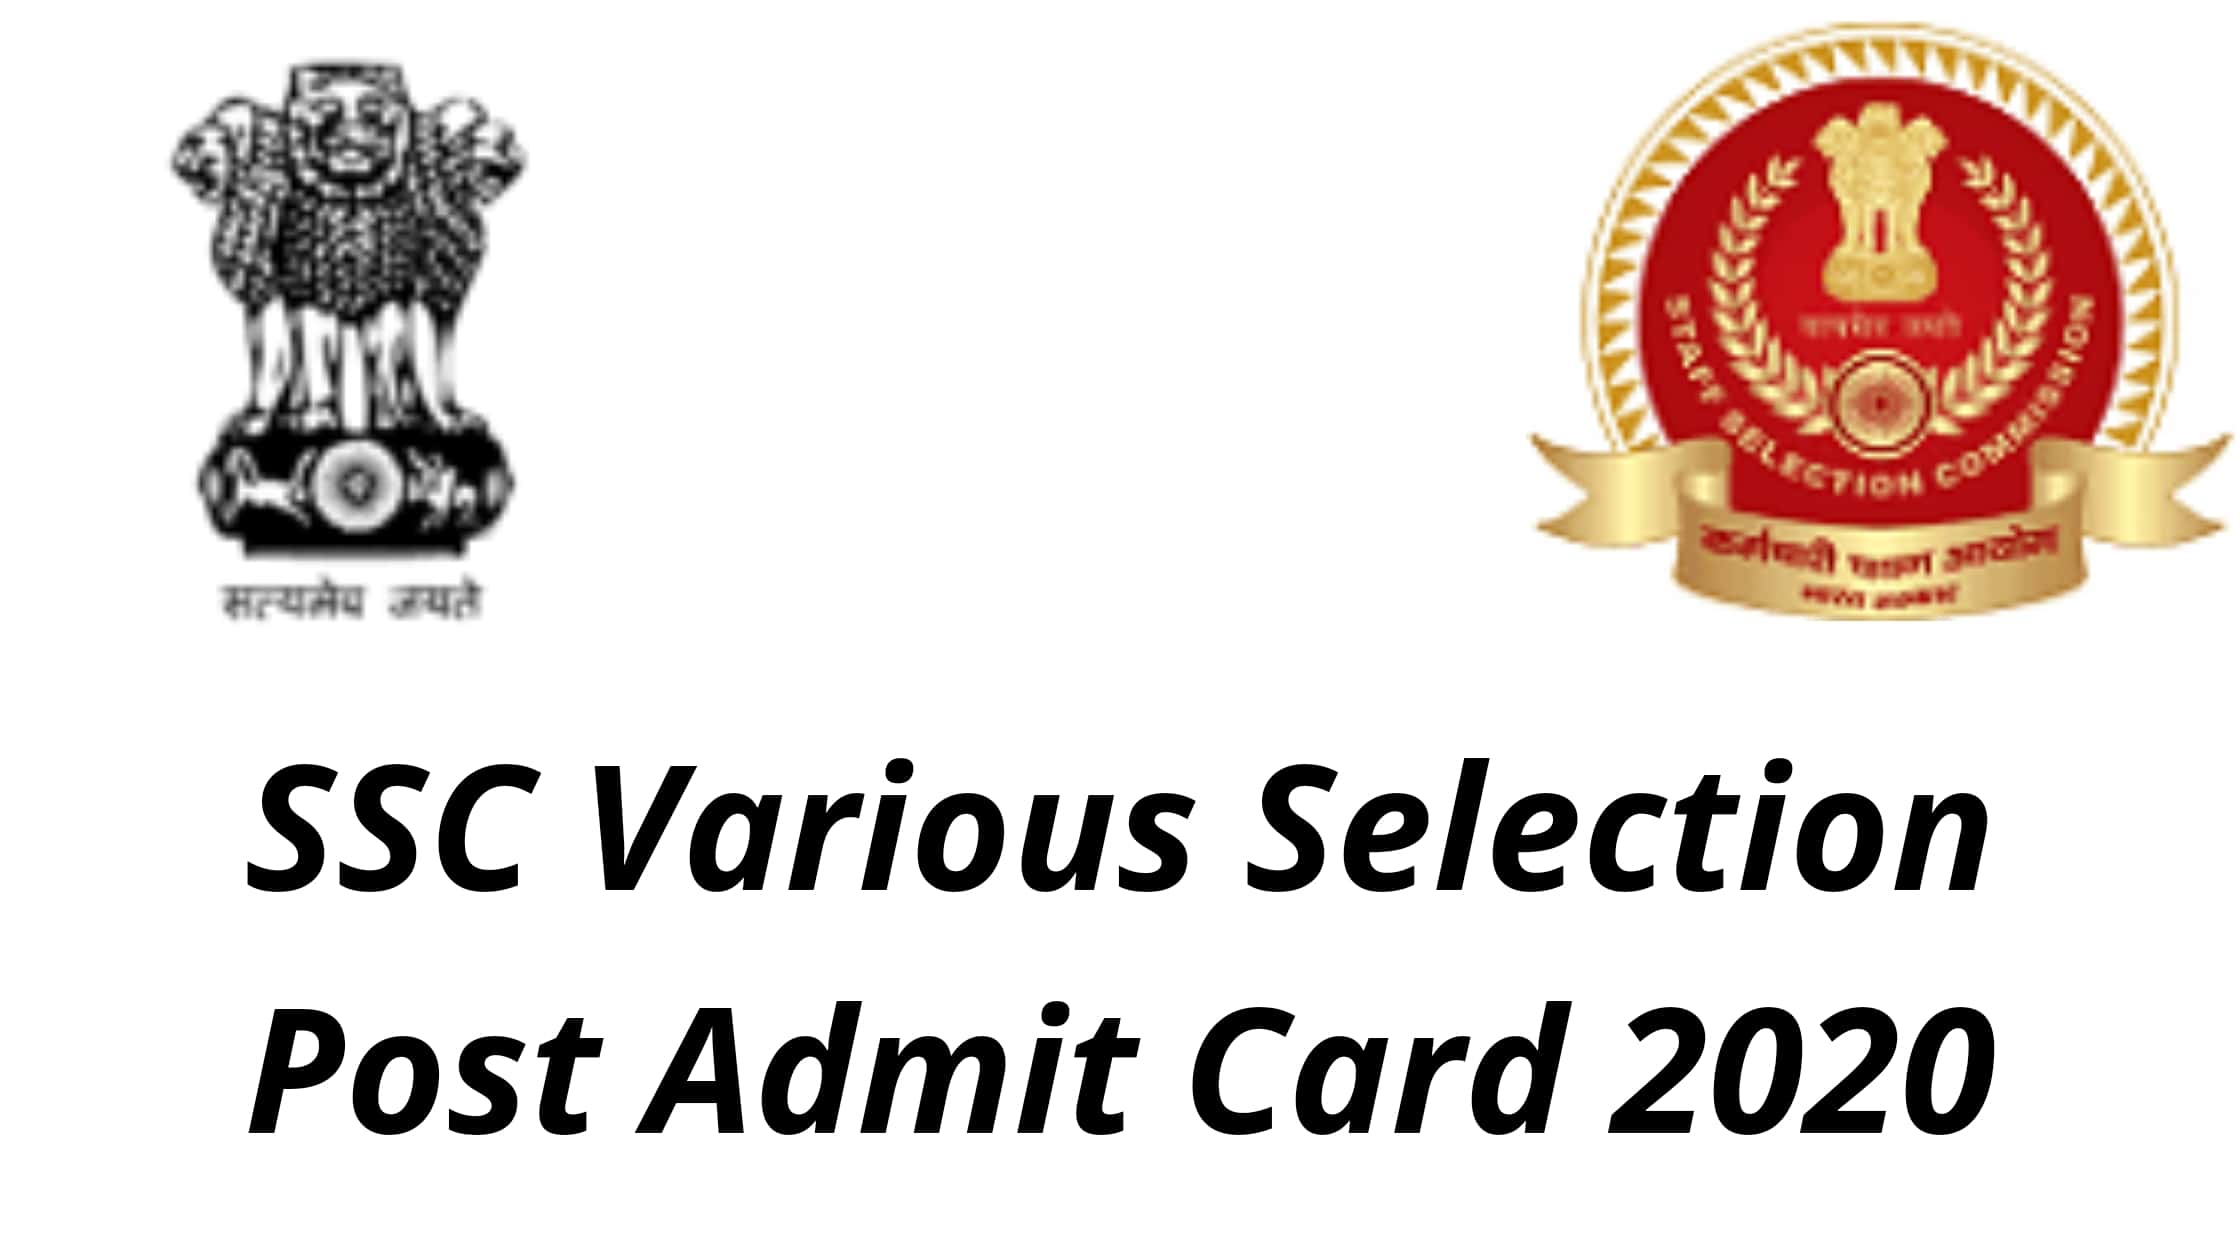 SSC Various Selection Post Admit Card 2020